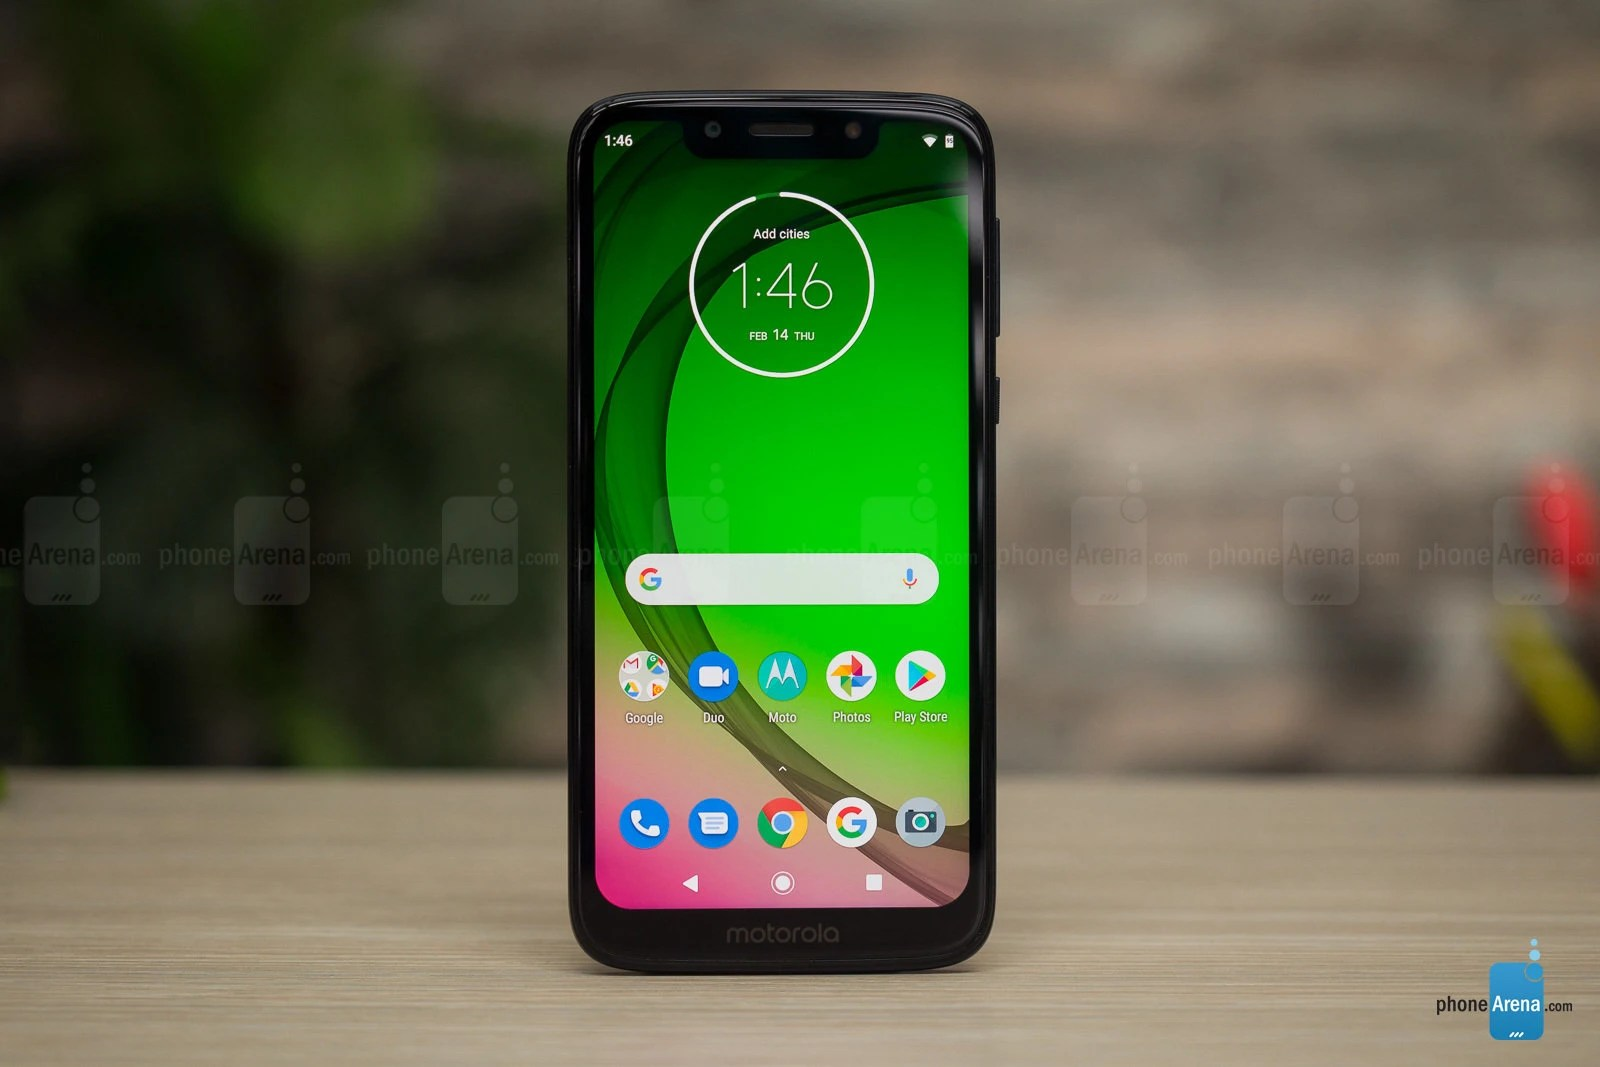 Motorola Moto G7, G7 Plus, G7 Power and G7 Play Review - PhoneArena